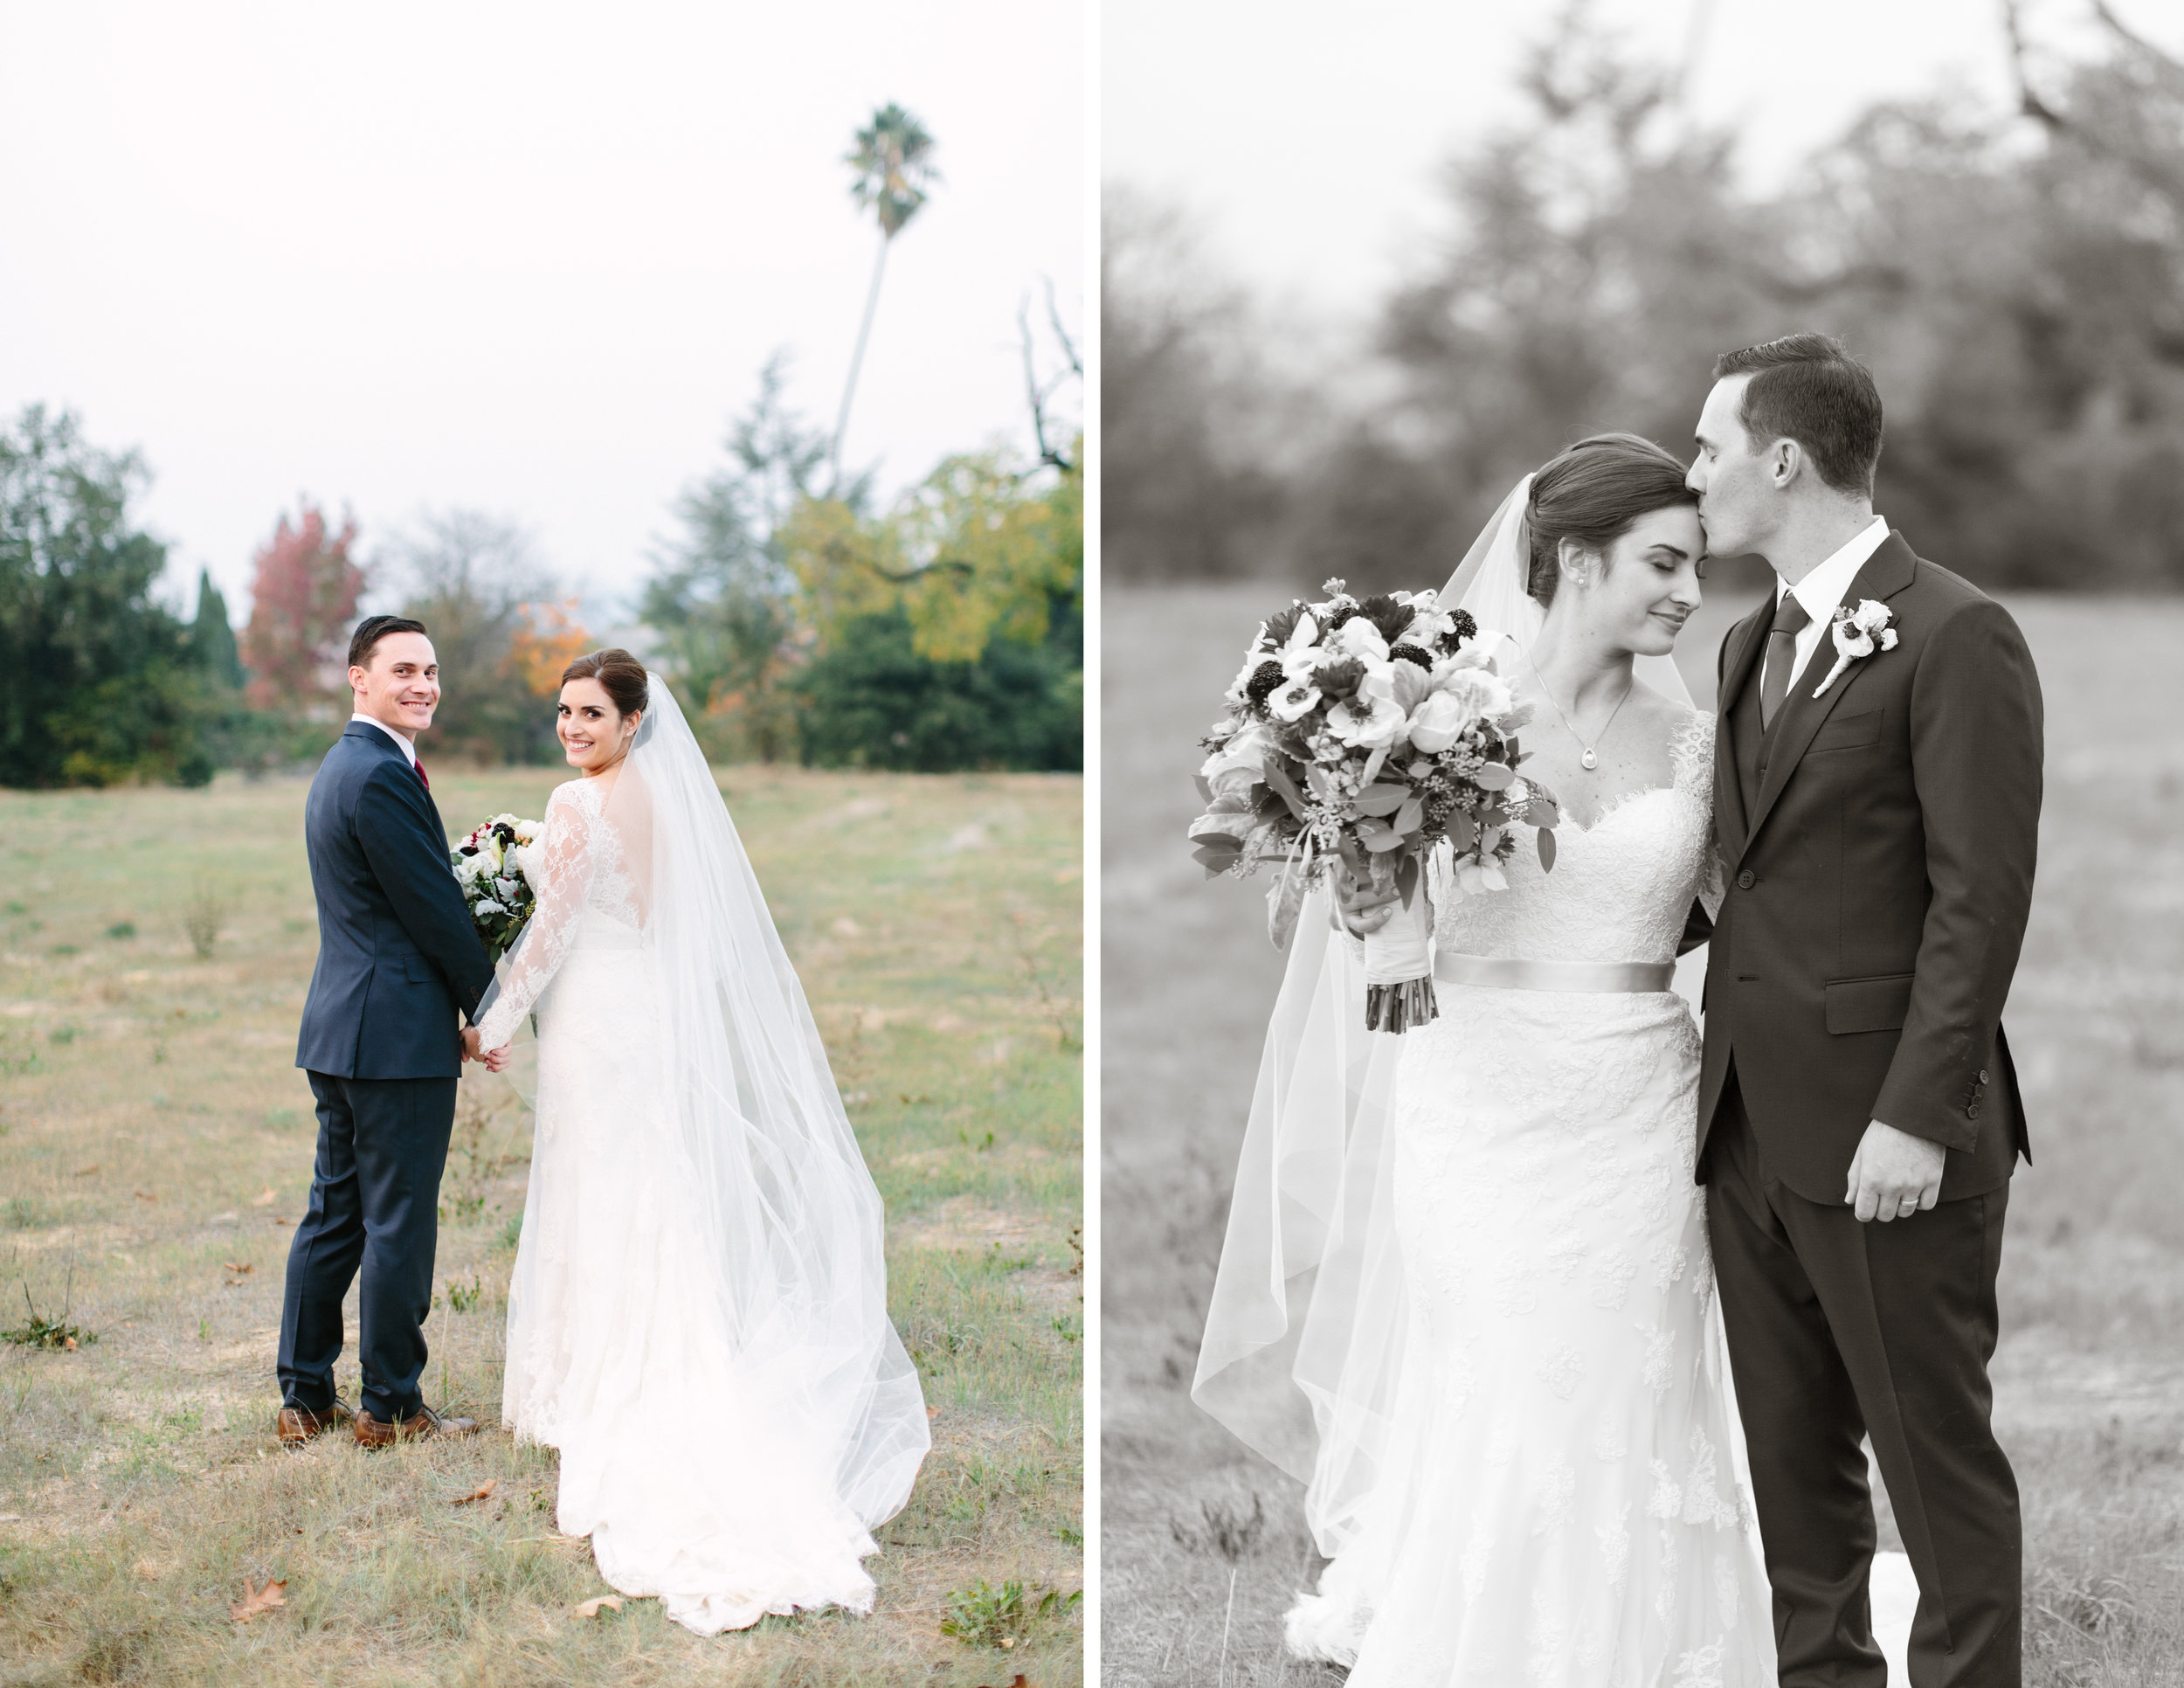 sonoma autumn wedding 15.jpg